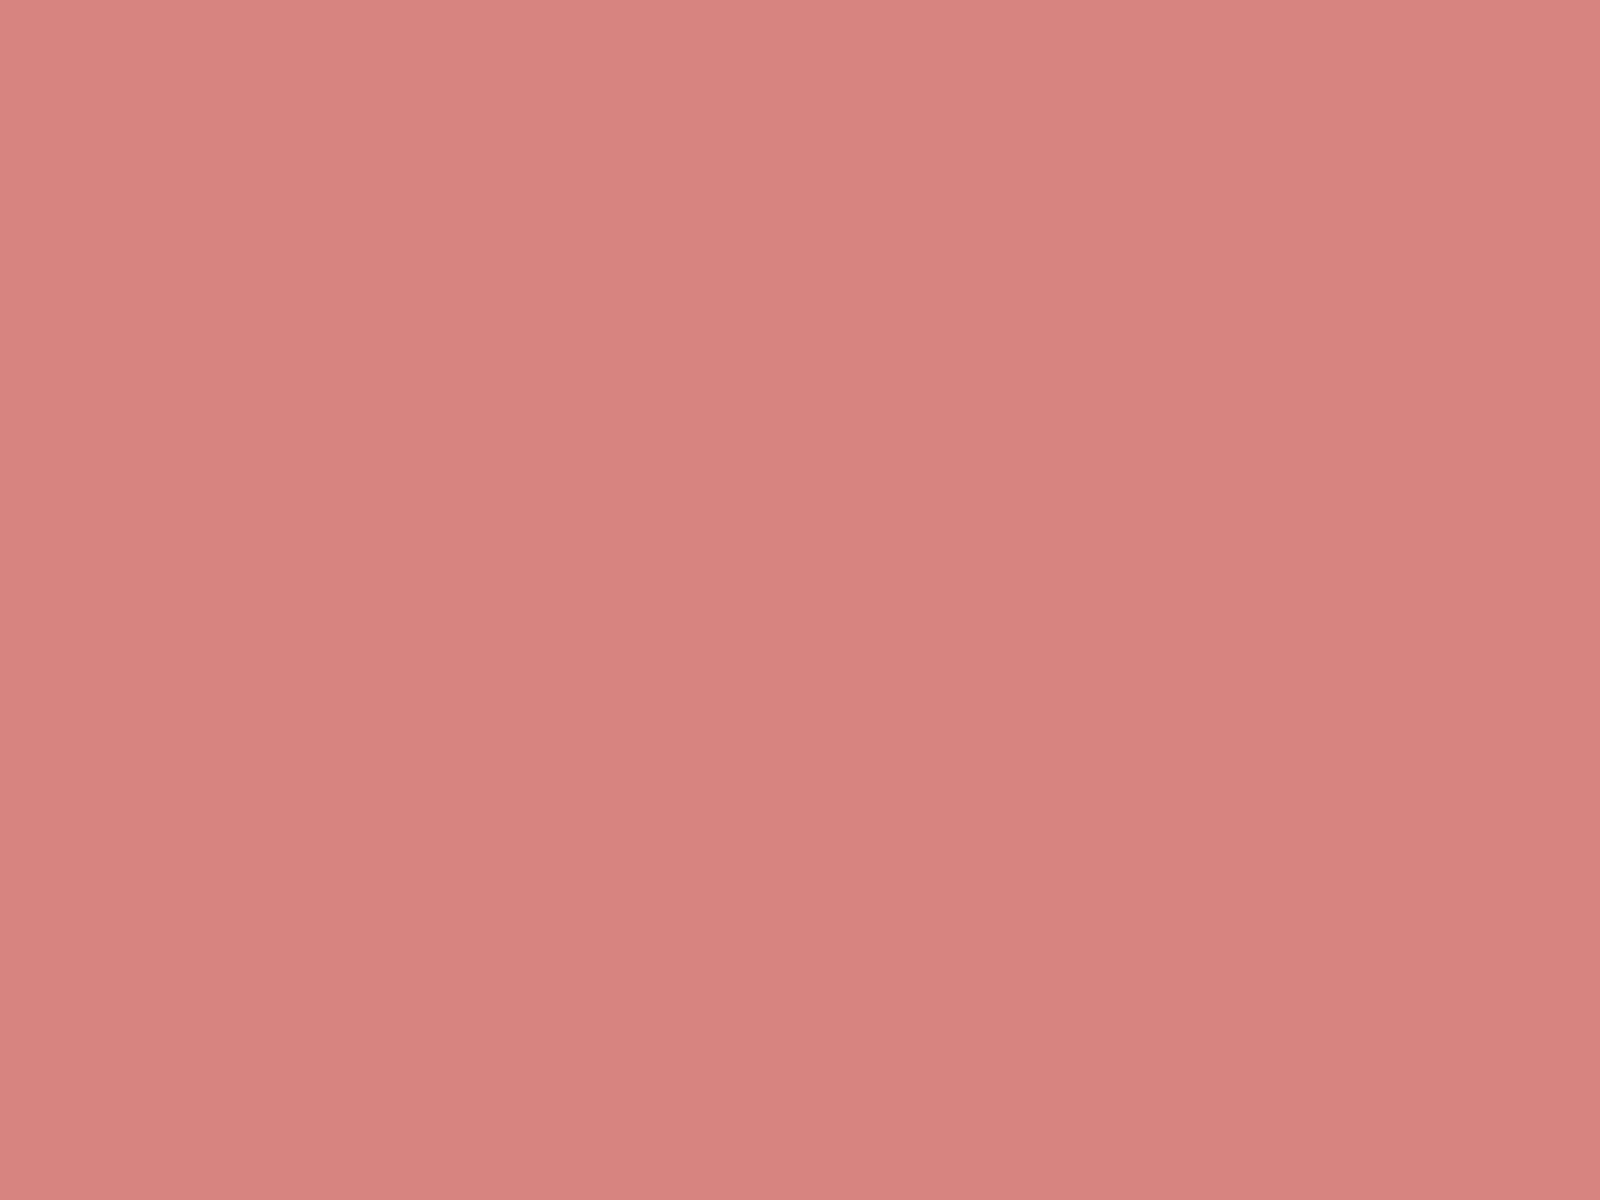 1600x1200 New York Pink Solid Color Background